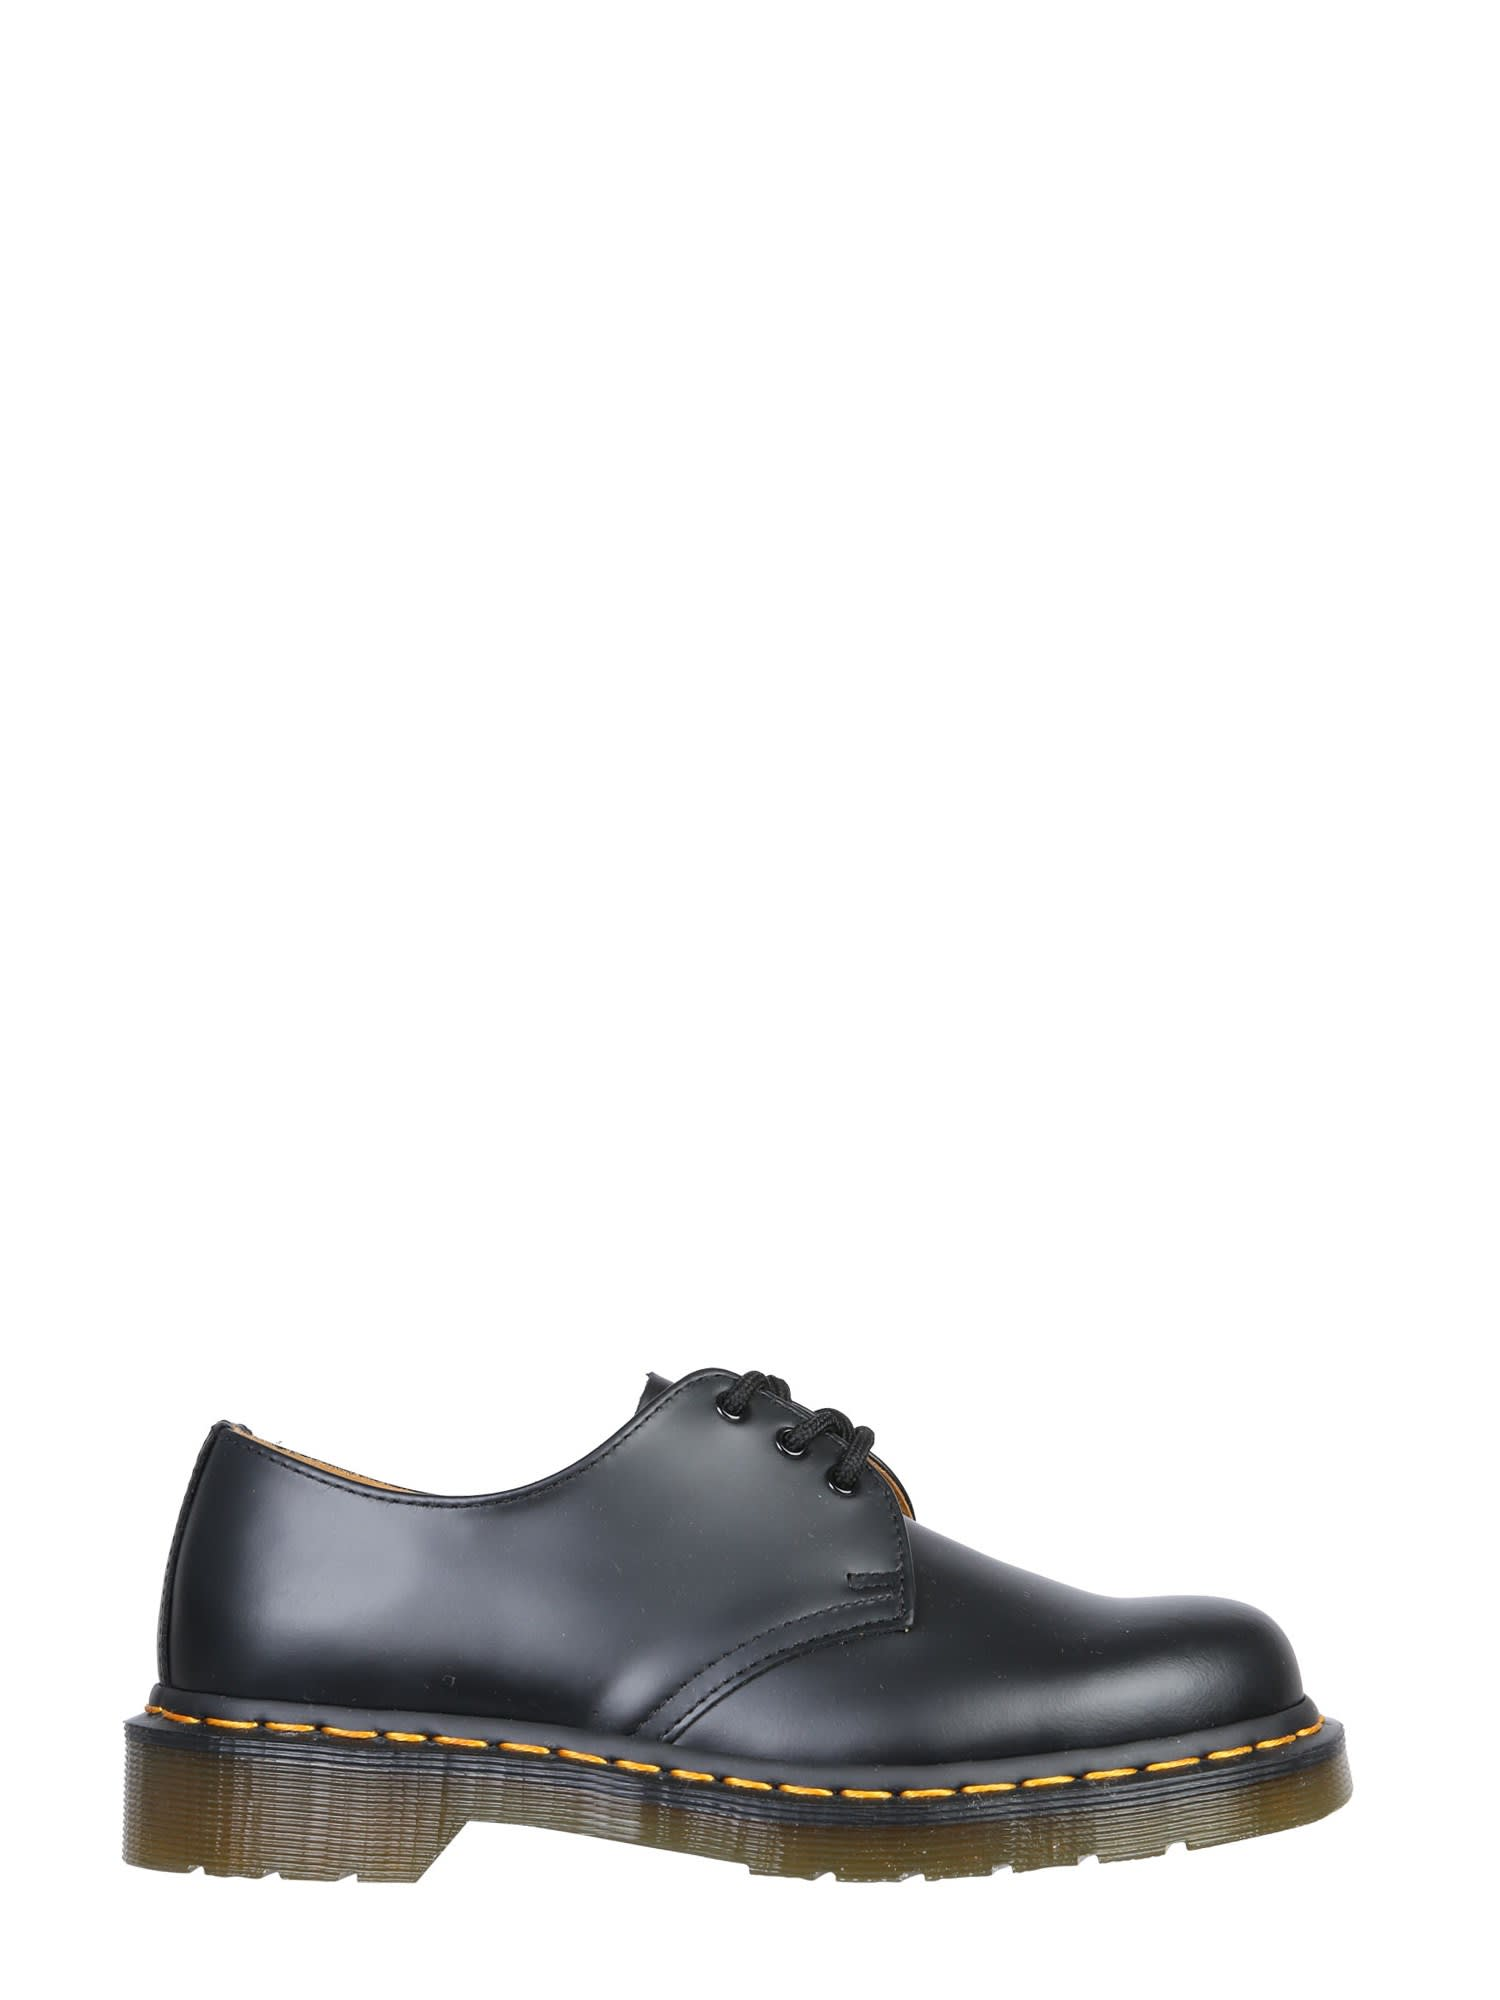 Dr. Martens 1461 SMOOTH LACE-UP